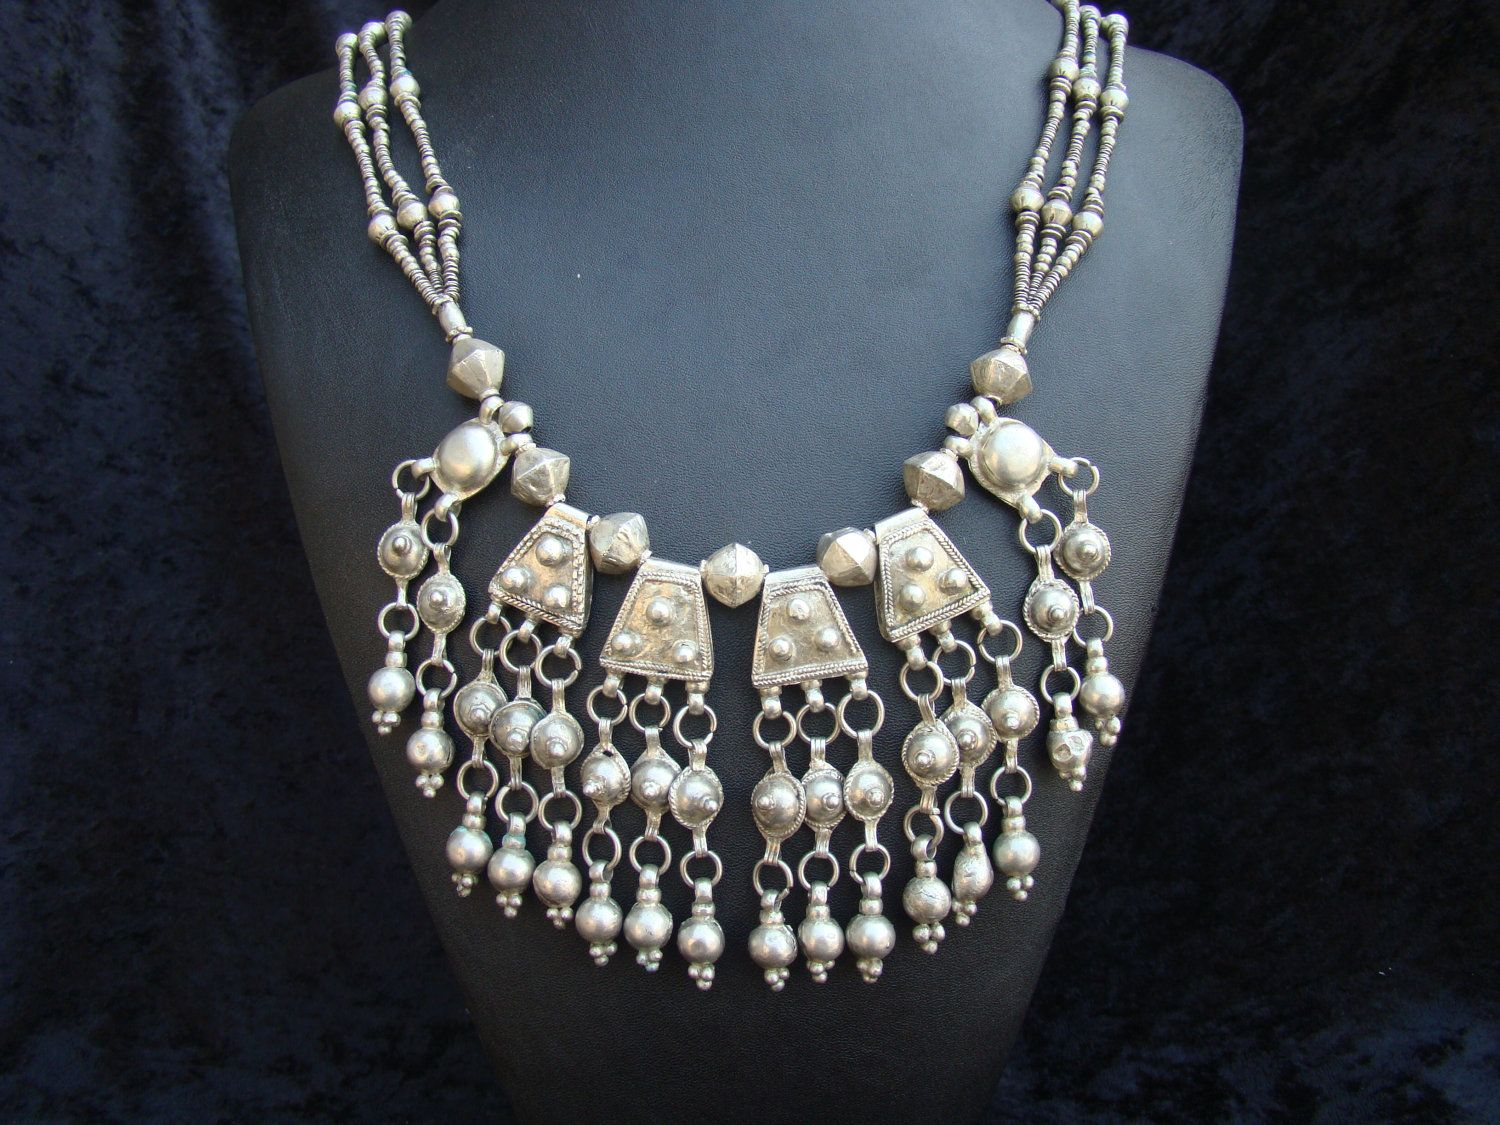 Africa | Silver necklace from the Argobba region of Ethiopia